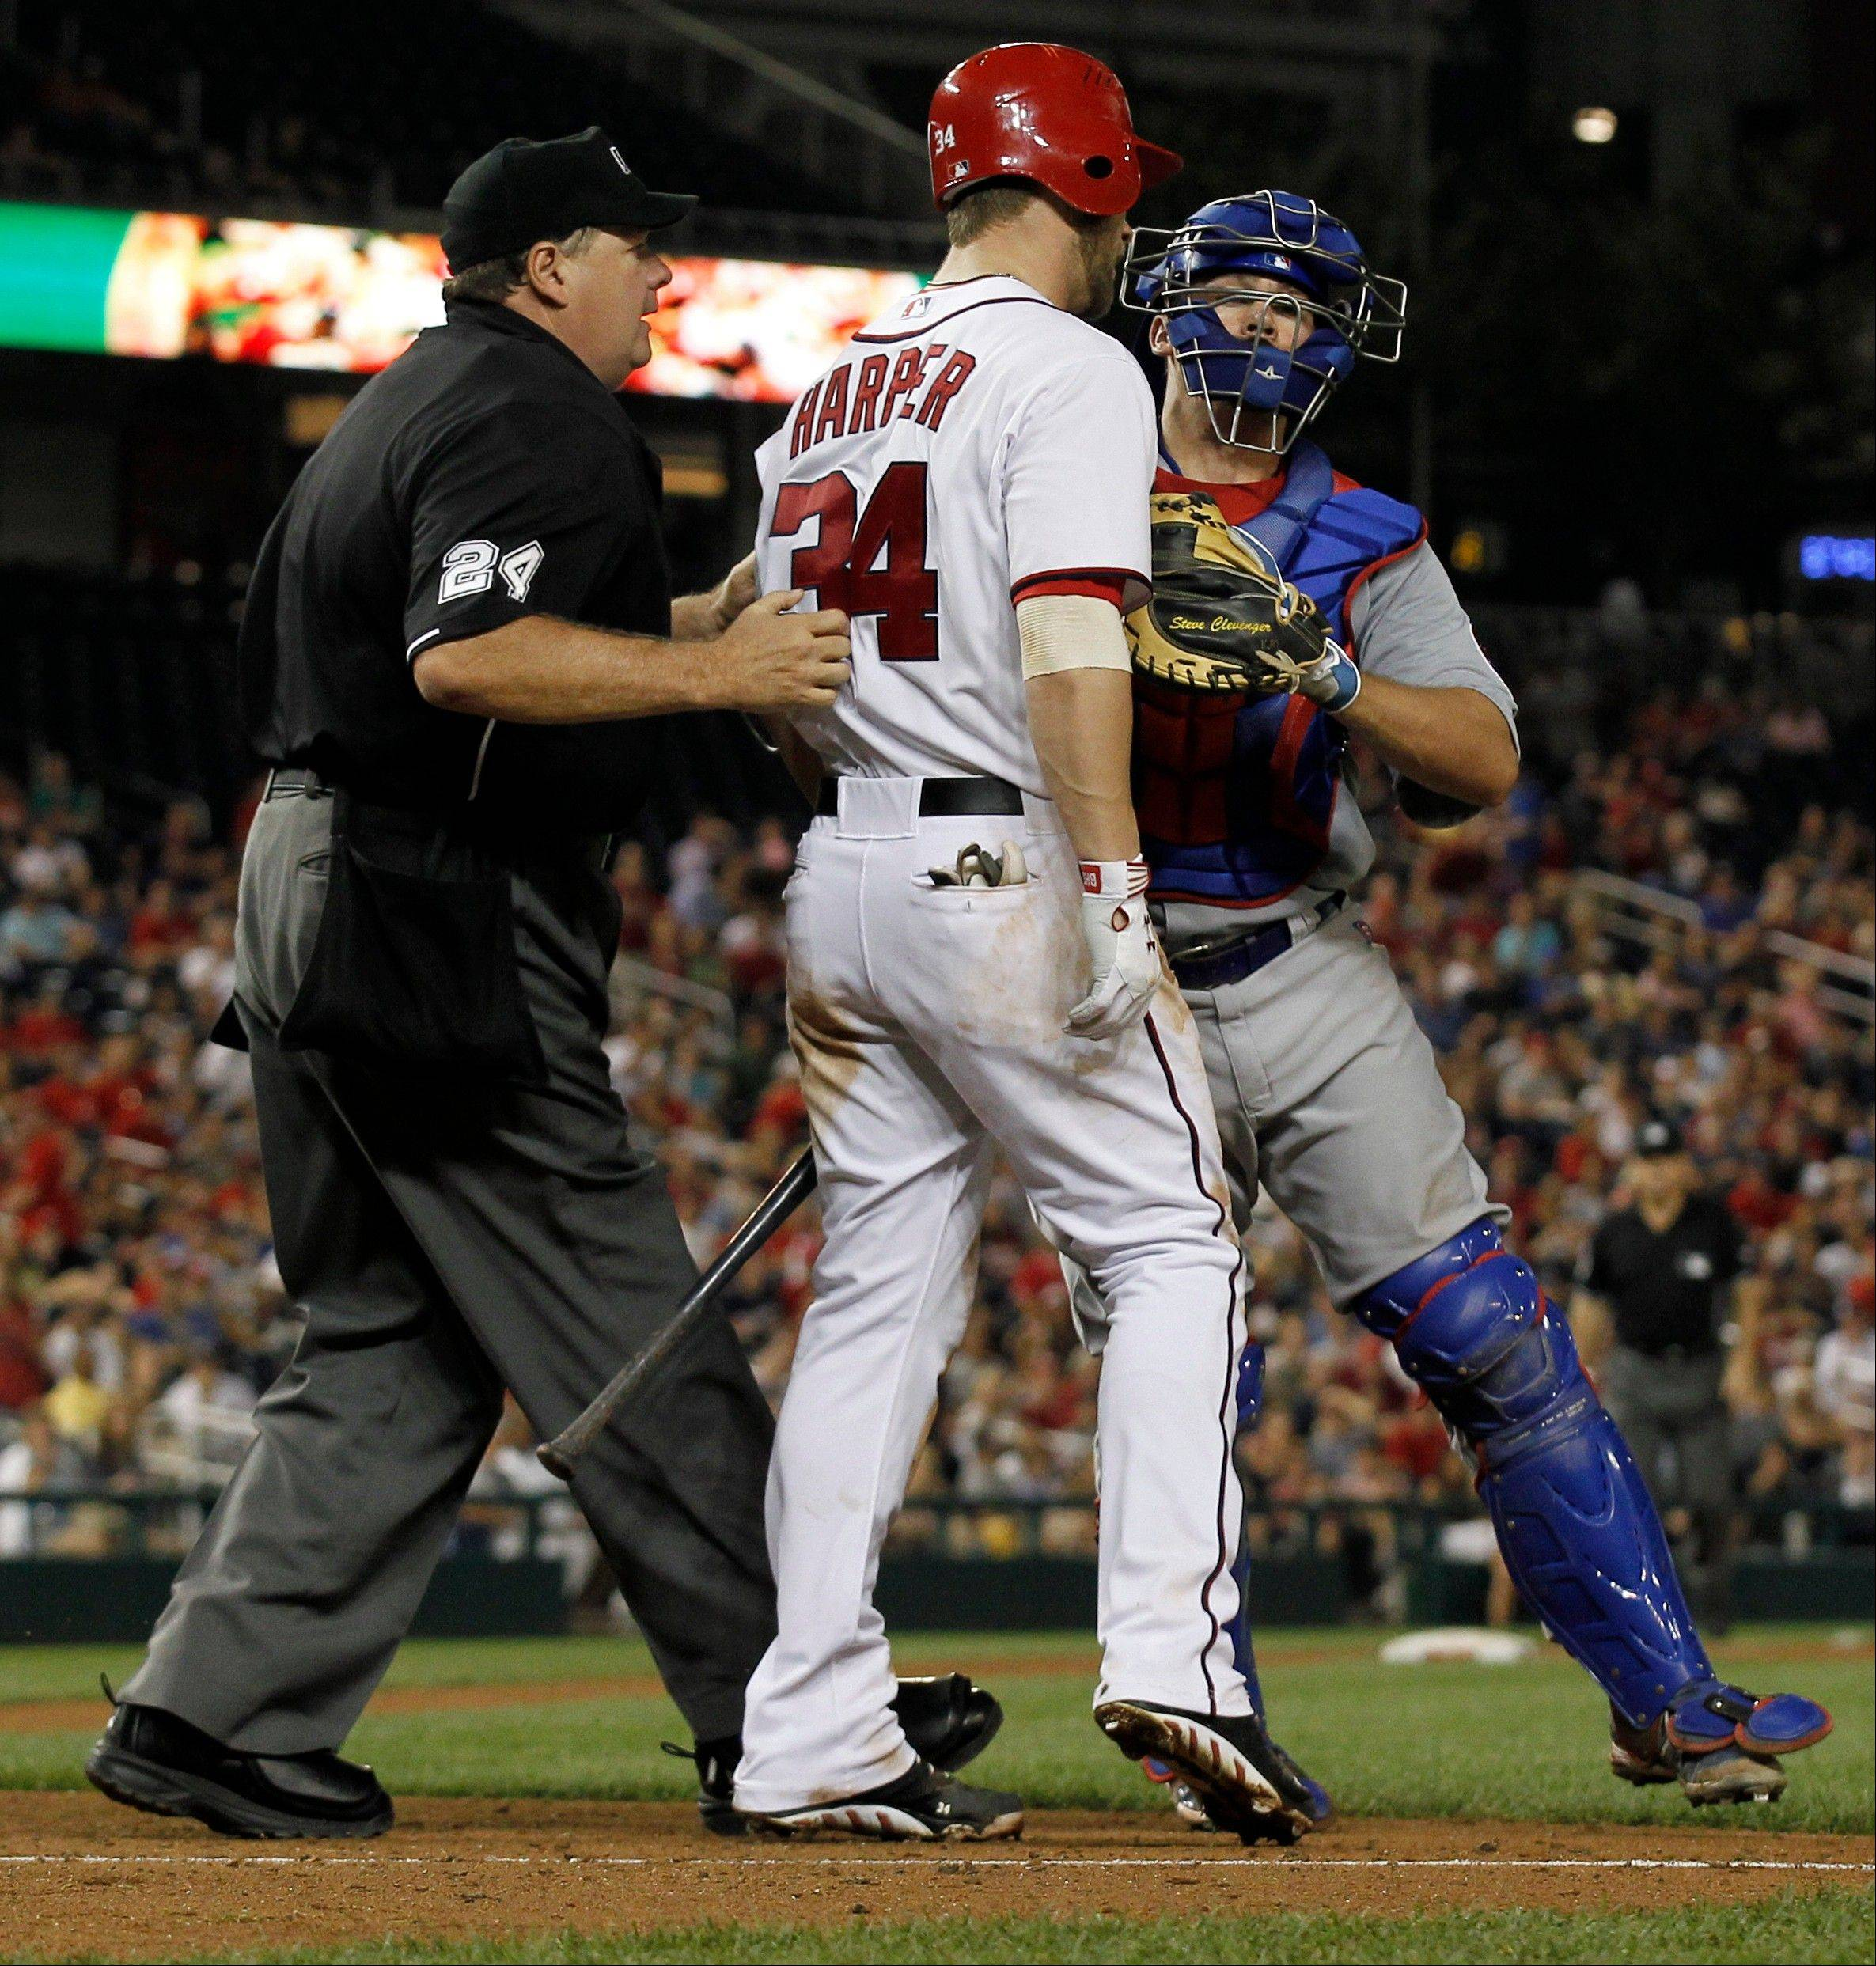 The Nationals� Bryce Harper is restrained by home-plate umpire Jerry Lane and Cubs catcher Steve Clevenger, and benches and bullpens emptied Thursday night at Washington.